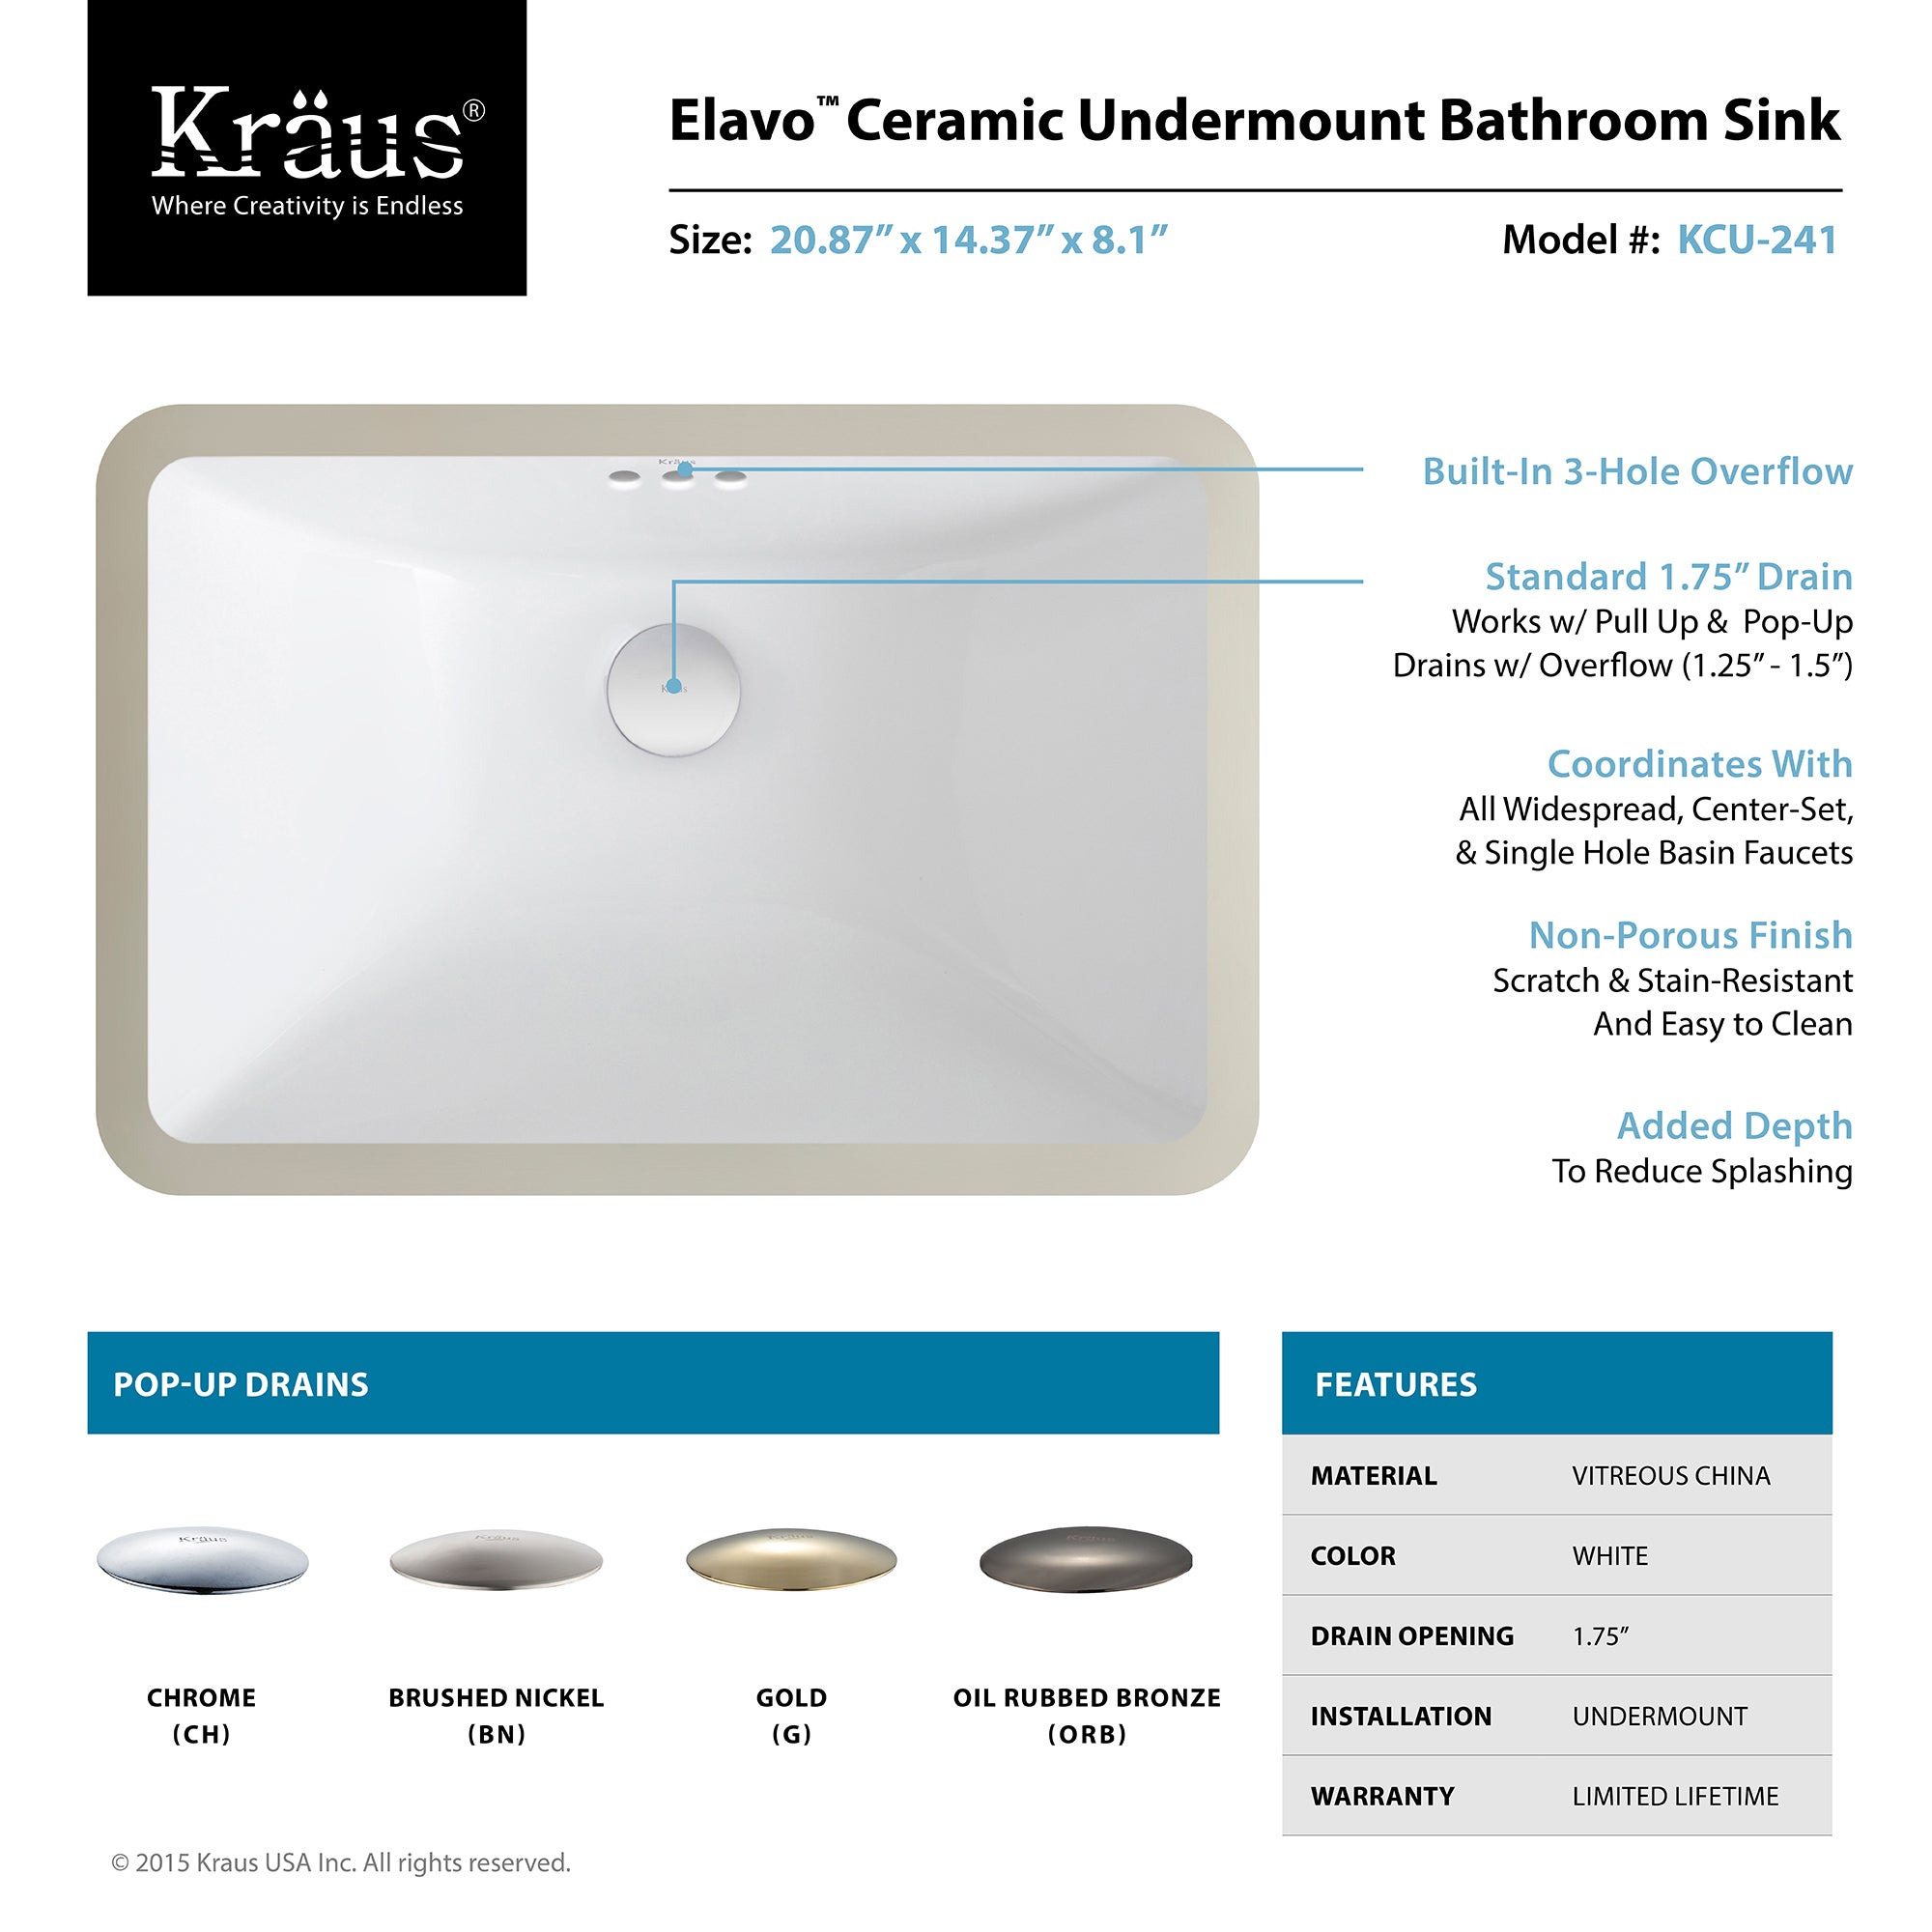 sink magnificent kraus washroom accesories counter square contemporary mount interior kcv glass bath kohler full basin of ideas kraususa rectangular granite white amazing wall cool with above dazzling vessel ceramic size trends fabulous small bathroom sinks modern faucets shower and undermount